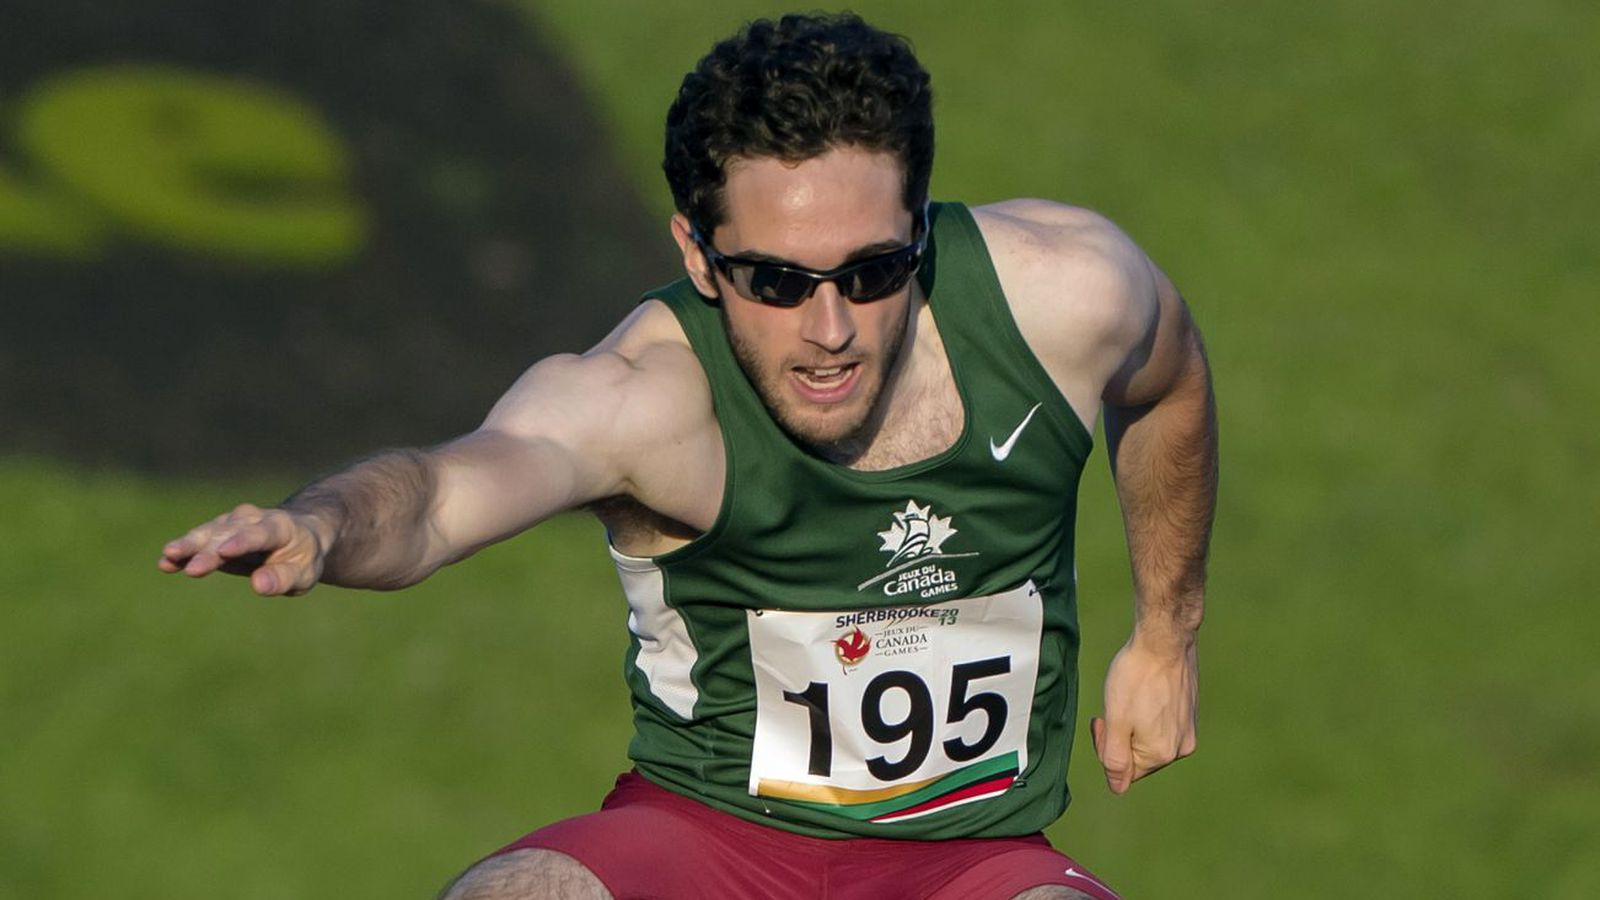 Track captain finds creative ways to come out